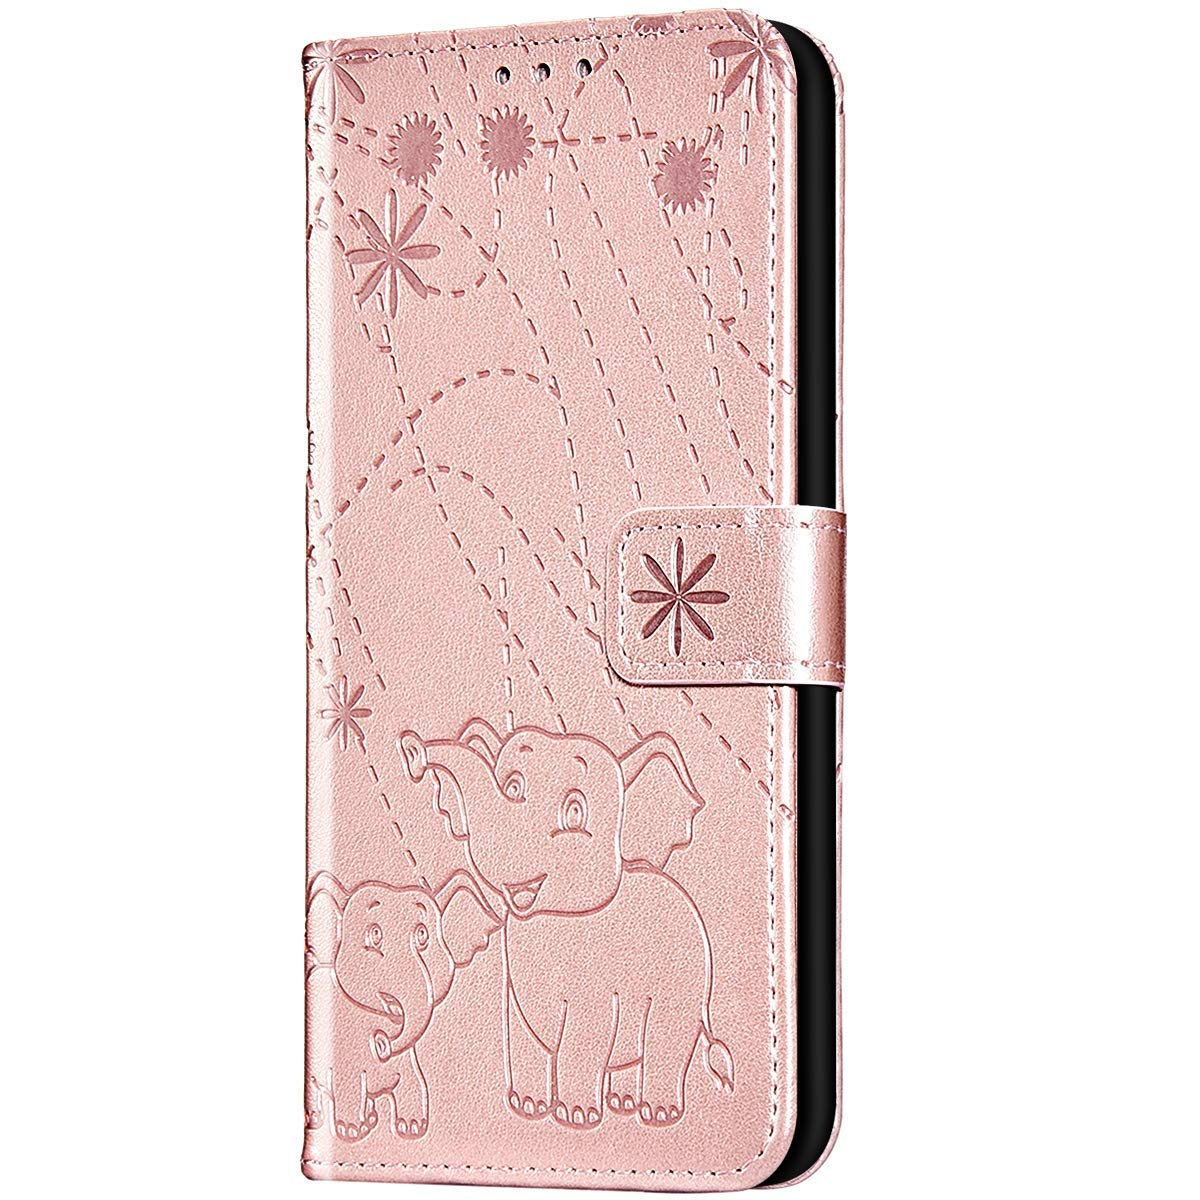 Case for Galaxy J3 2017 Flip Case Premium Soft PU Leather Embossed with Folding Stand, Card Slots, Wristlet and Magnetic Closure Protective Cover for Galaxy J3 2017,Rose gold by ikasus